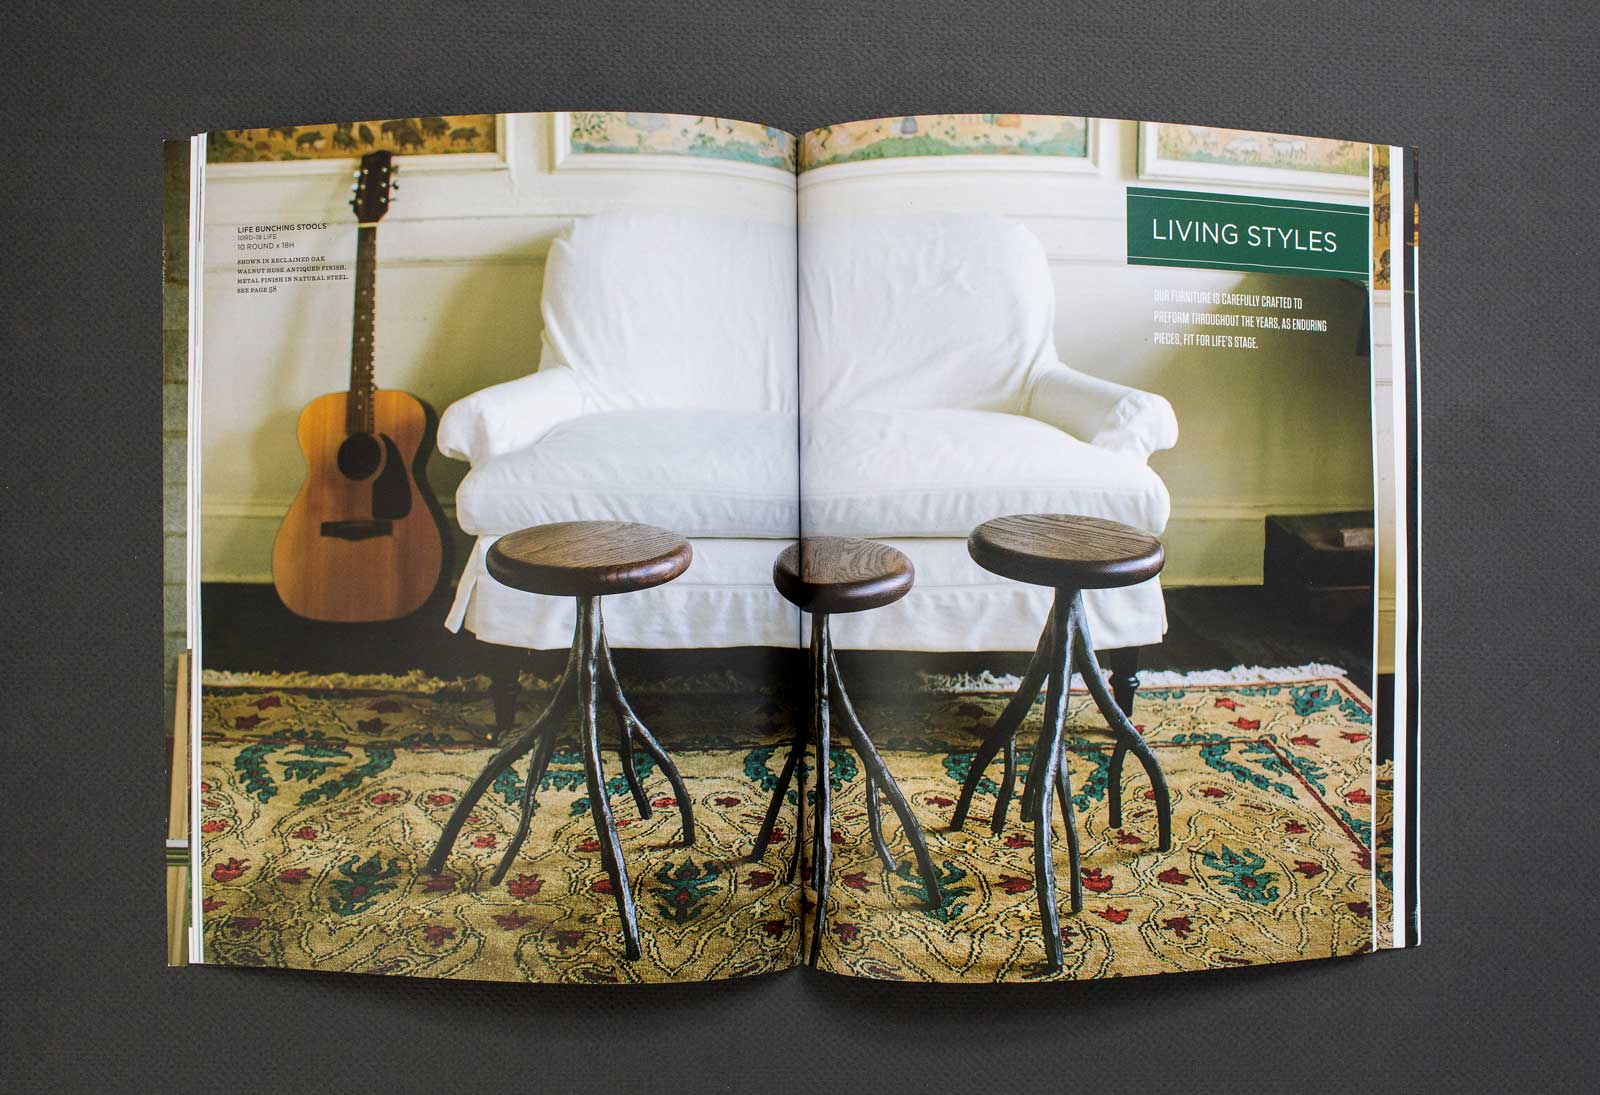 Old Wood Furniture Company catalog spread shows a bar stools with wood tops and organic metal legs